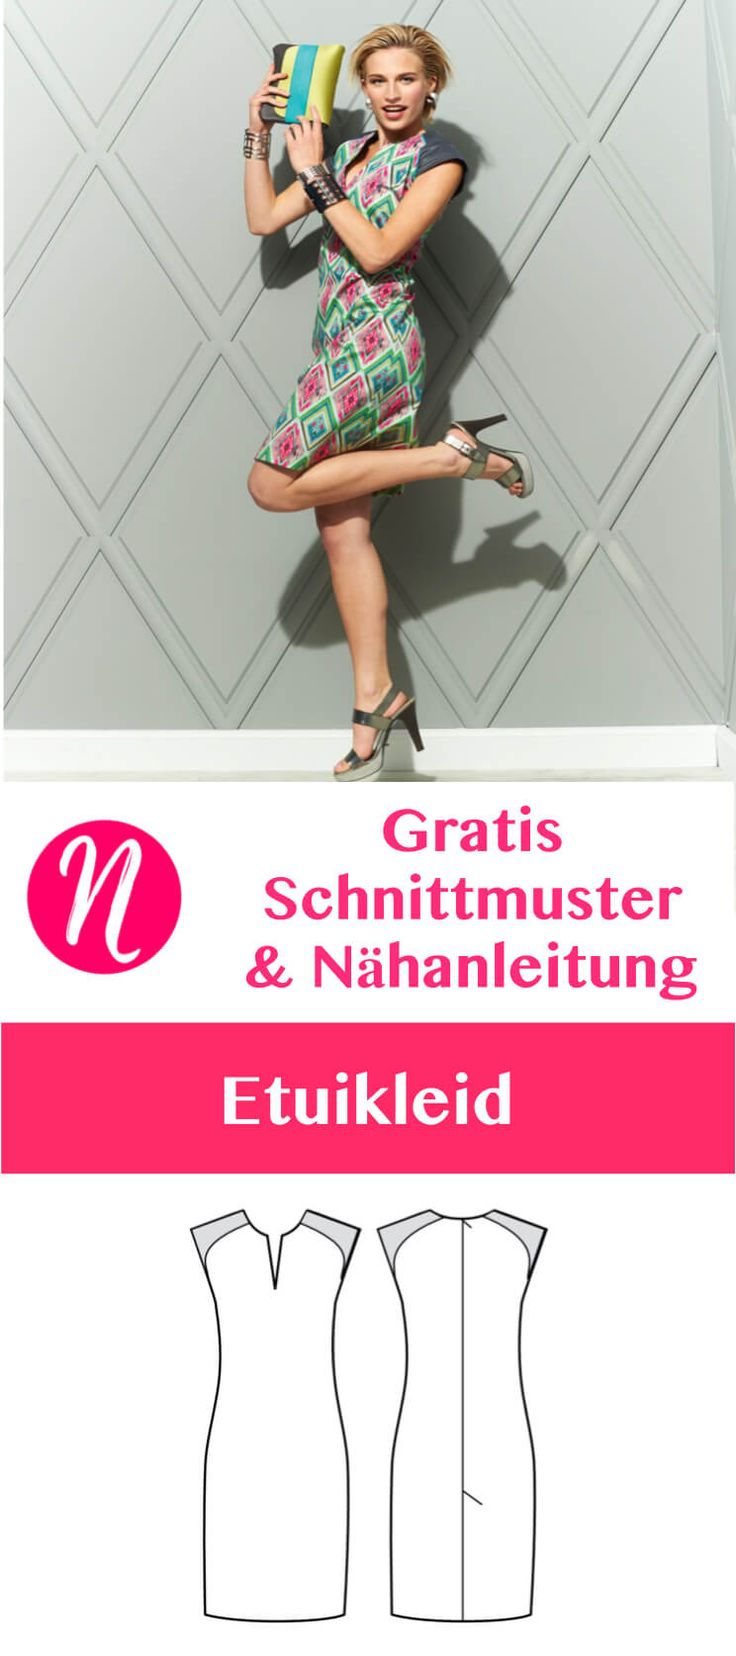 Gratis Schnittmuster für ein pfiffiges Etuikleid in Gr. 36 - 46. Toll für den Sommer. Mit Nähanleitung ❤ Nähtalente - Magazin für kostenlose Schnittmuster ❤ Free sewing pattern for a ladies shift dress in size 36 - 46. Perfect for the summer. PDF-sewing-pattern for print at home ❤ Nähtalente - Magazin for sewing and free sewing pattern ❤